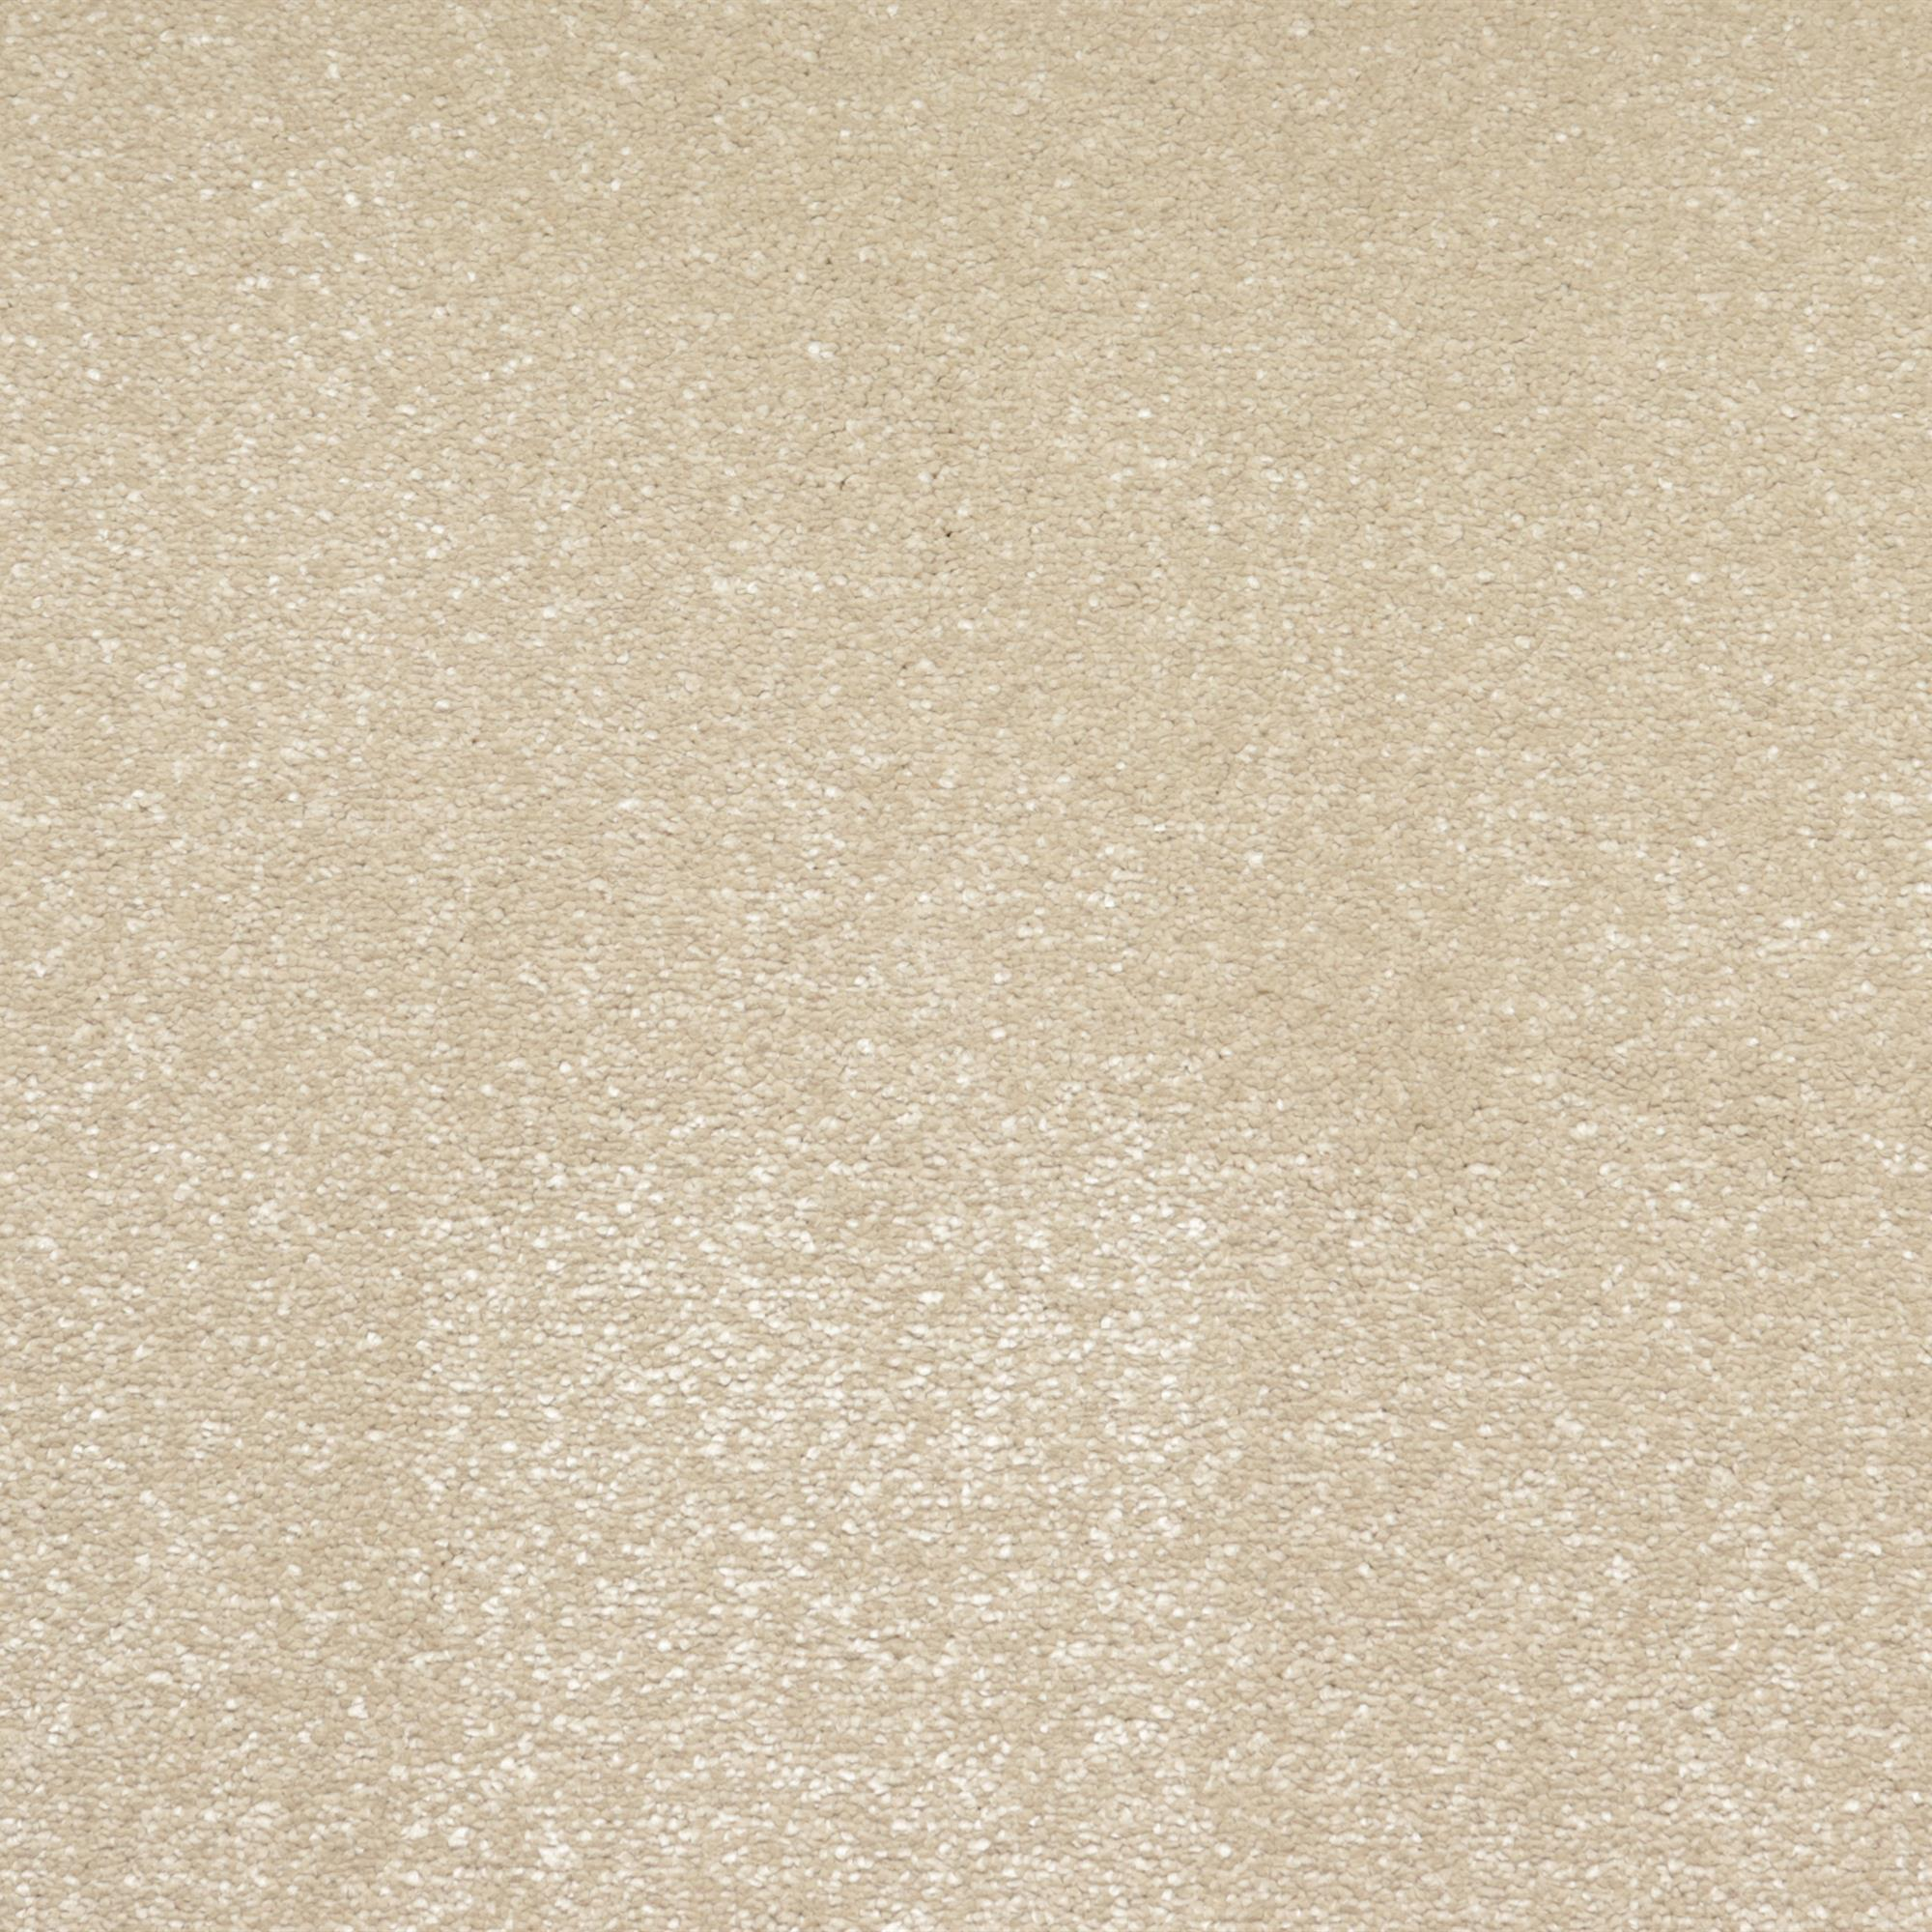 Signature Westminster Carpet, Westminster Ech7025 Kempsey, swatch